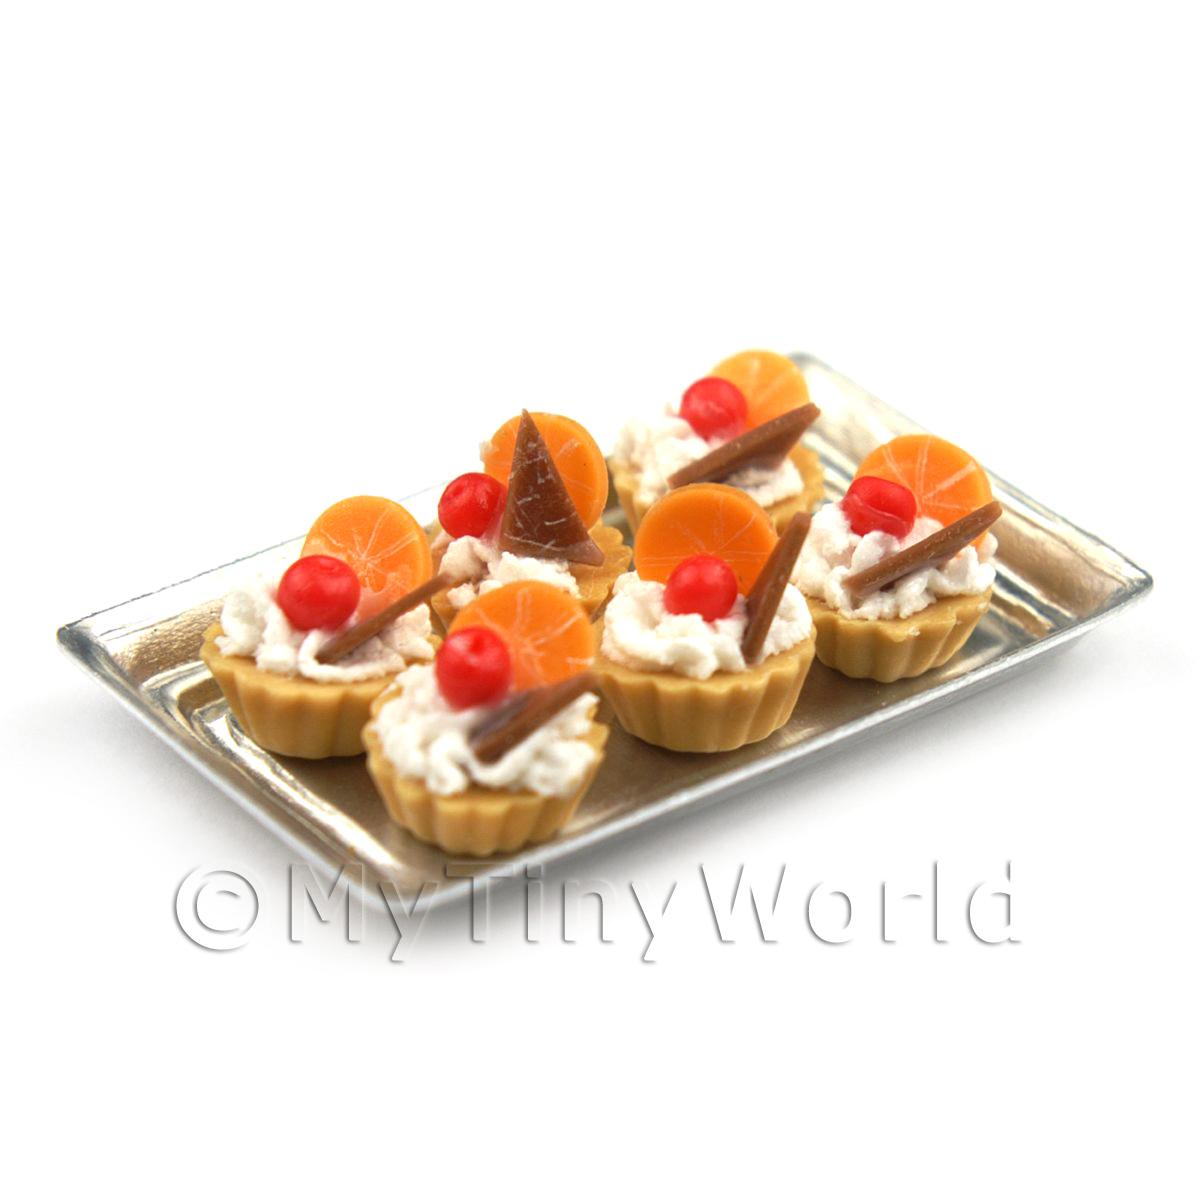 6 Loose Dolls House Miniature  Chocolate Orange Tarts on a Tray